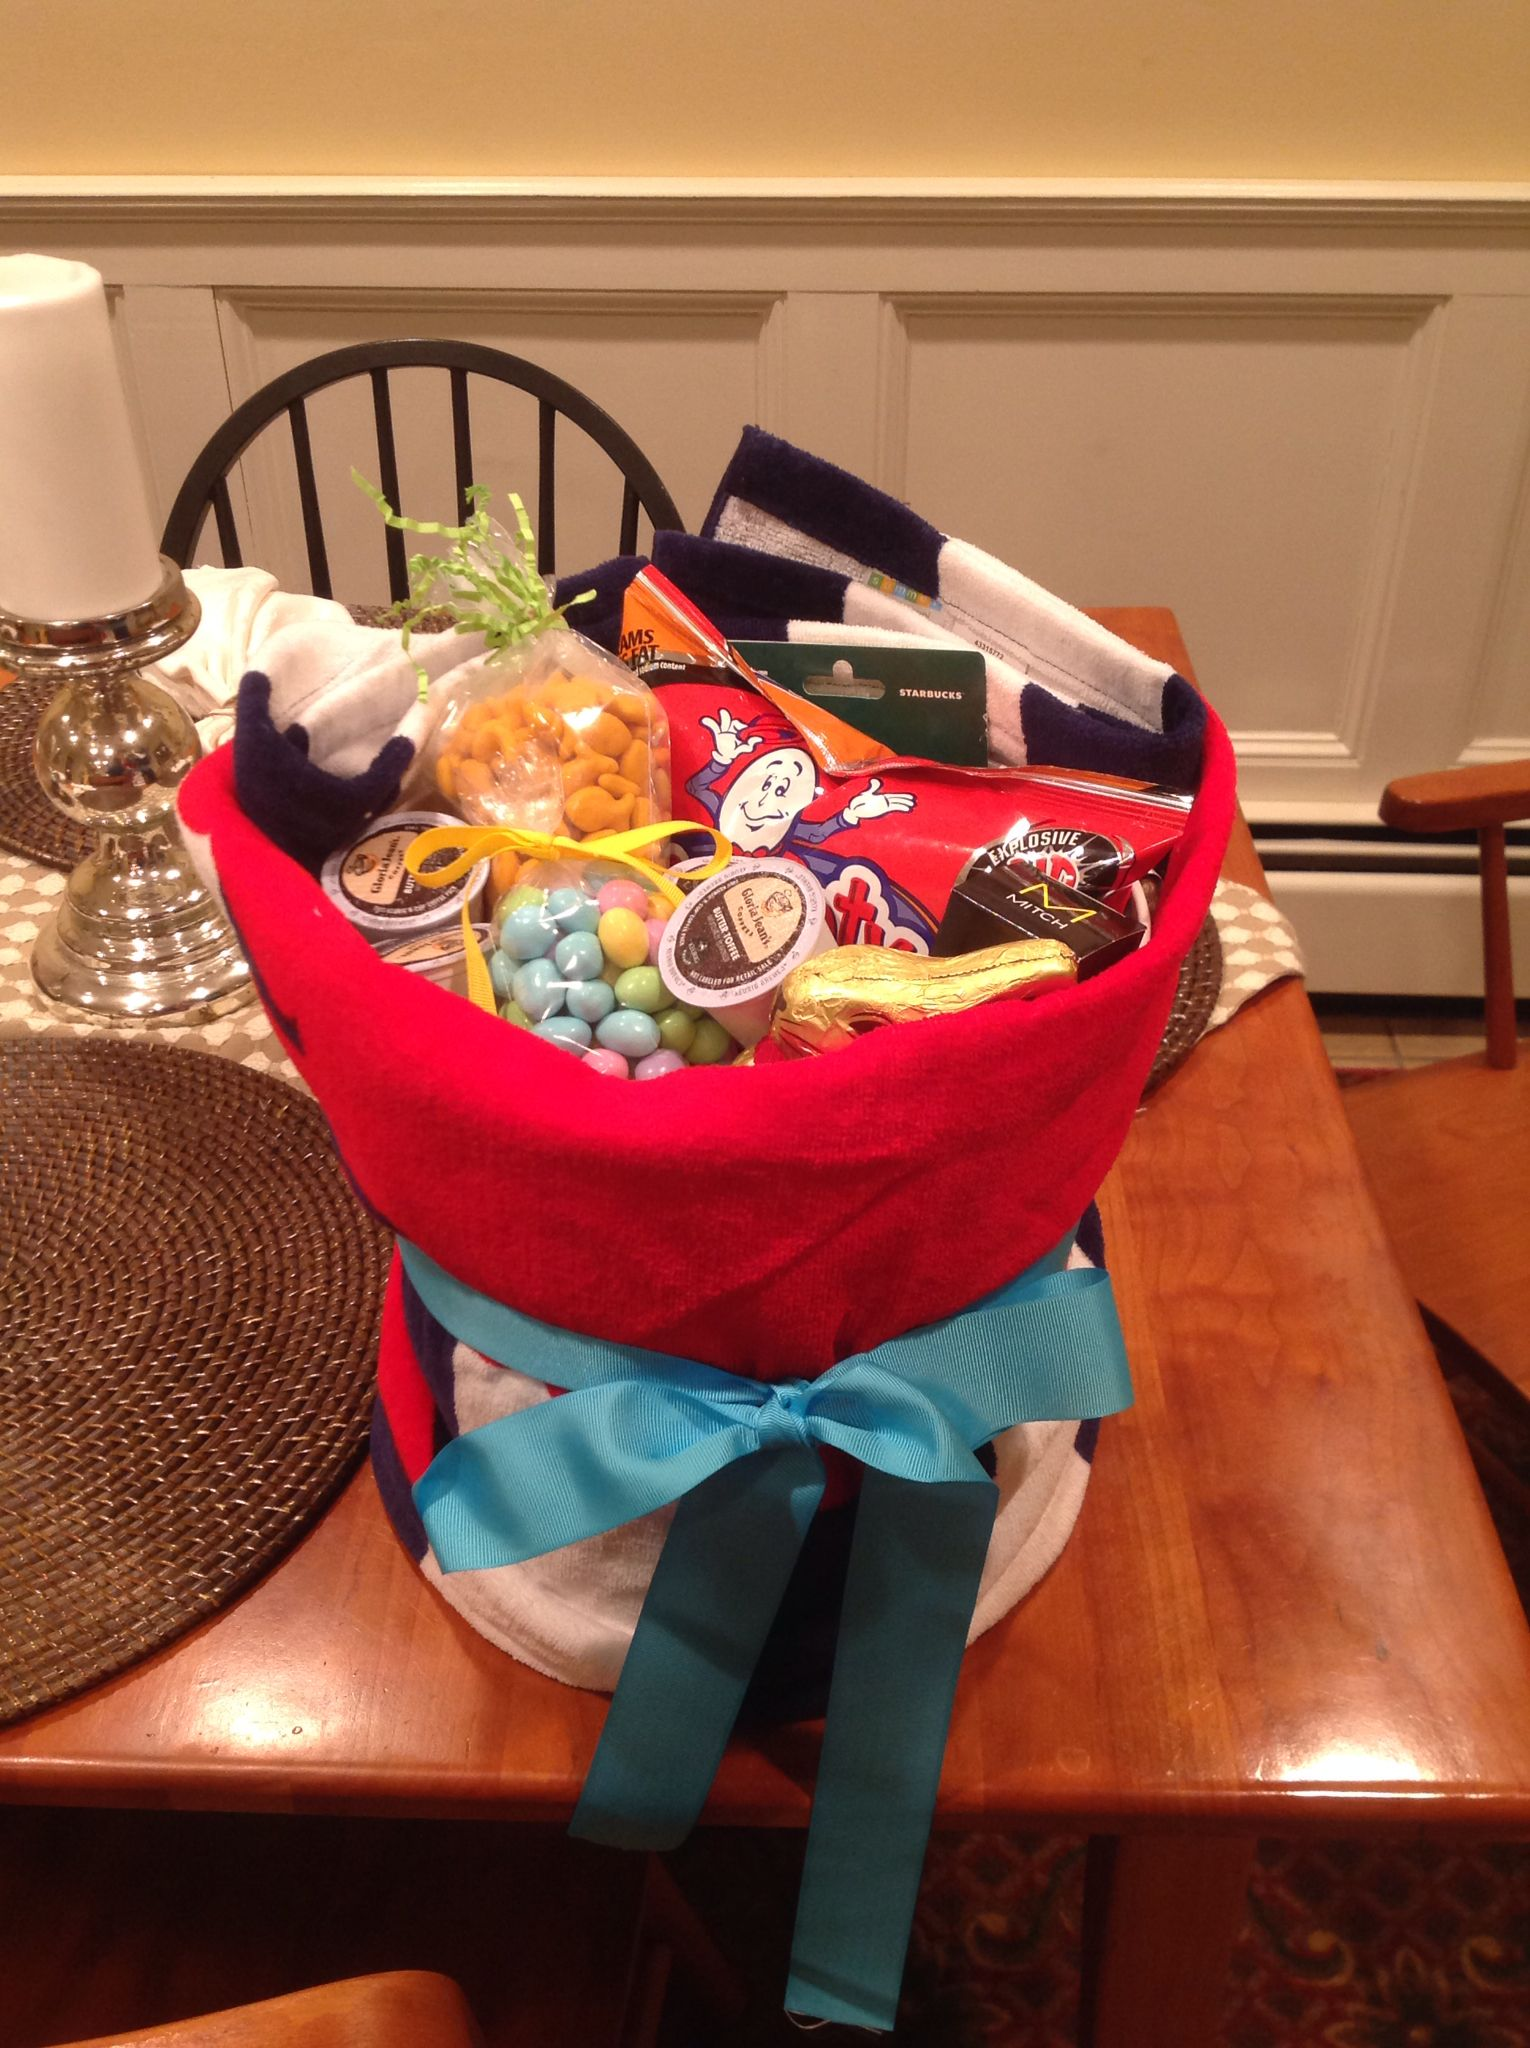 Easter basket alternative for college studentte wastebasket easter basket alternative for college studentte wastebasket wrapped in a beach towel negle Choice Image